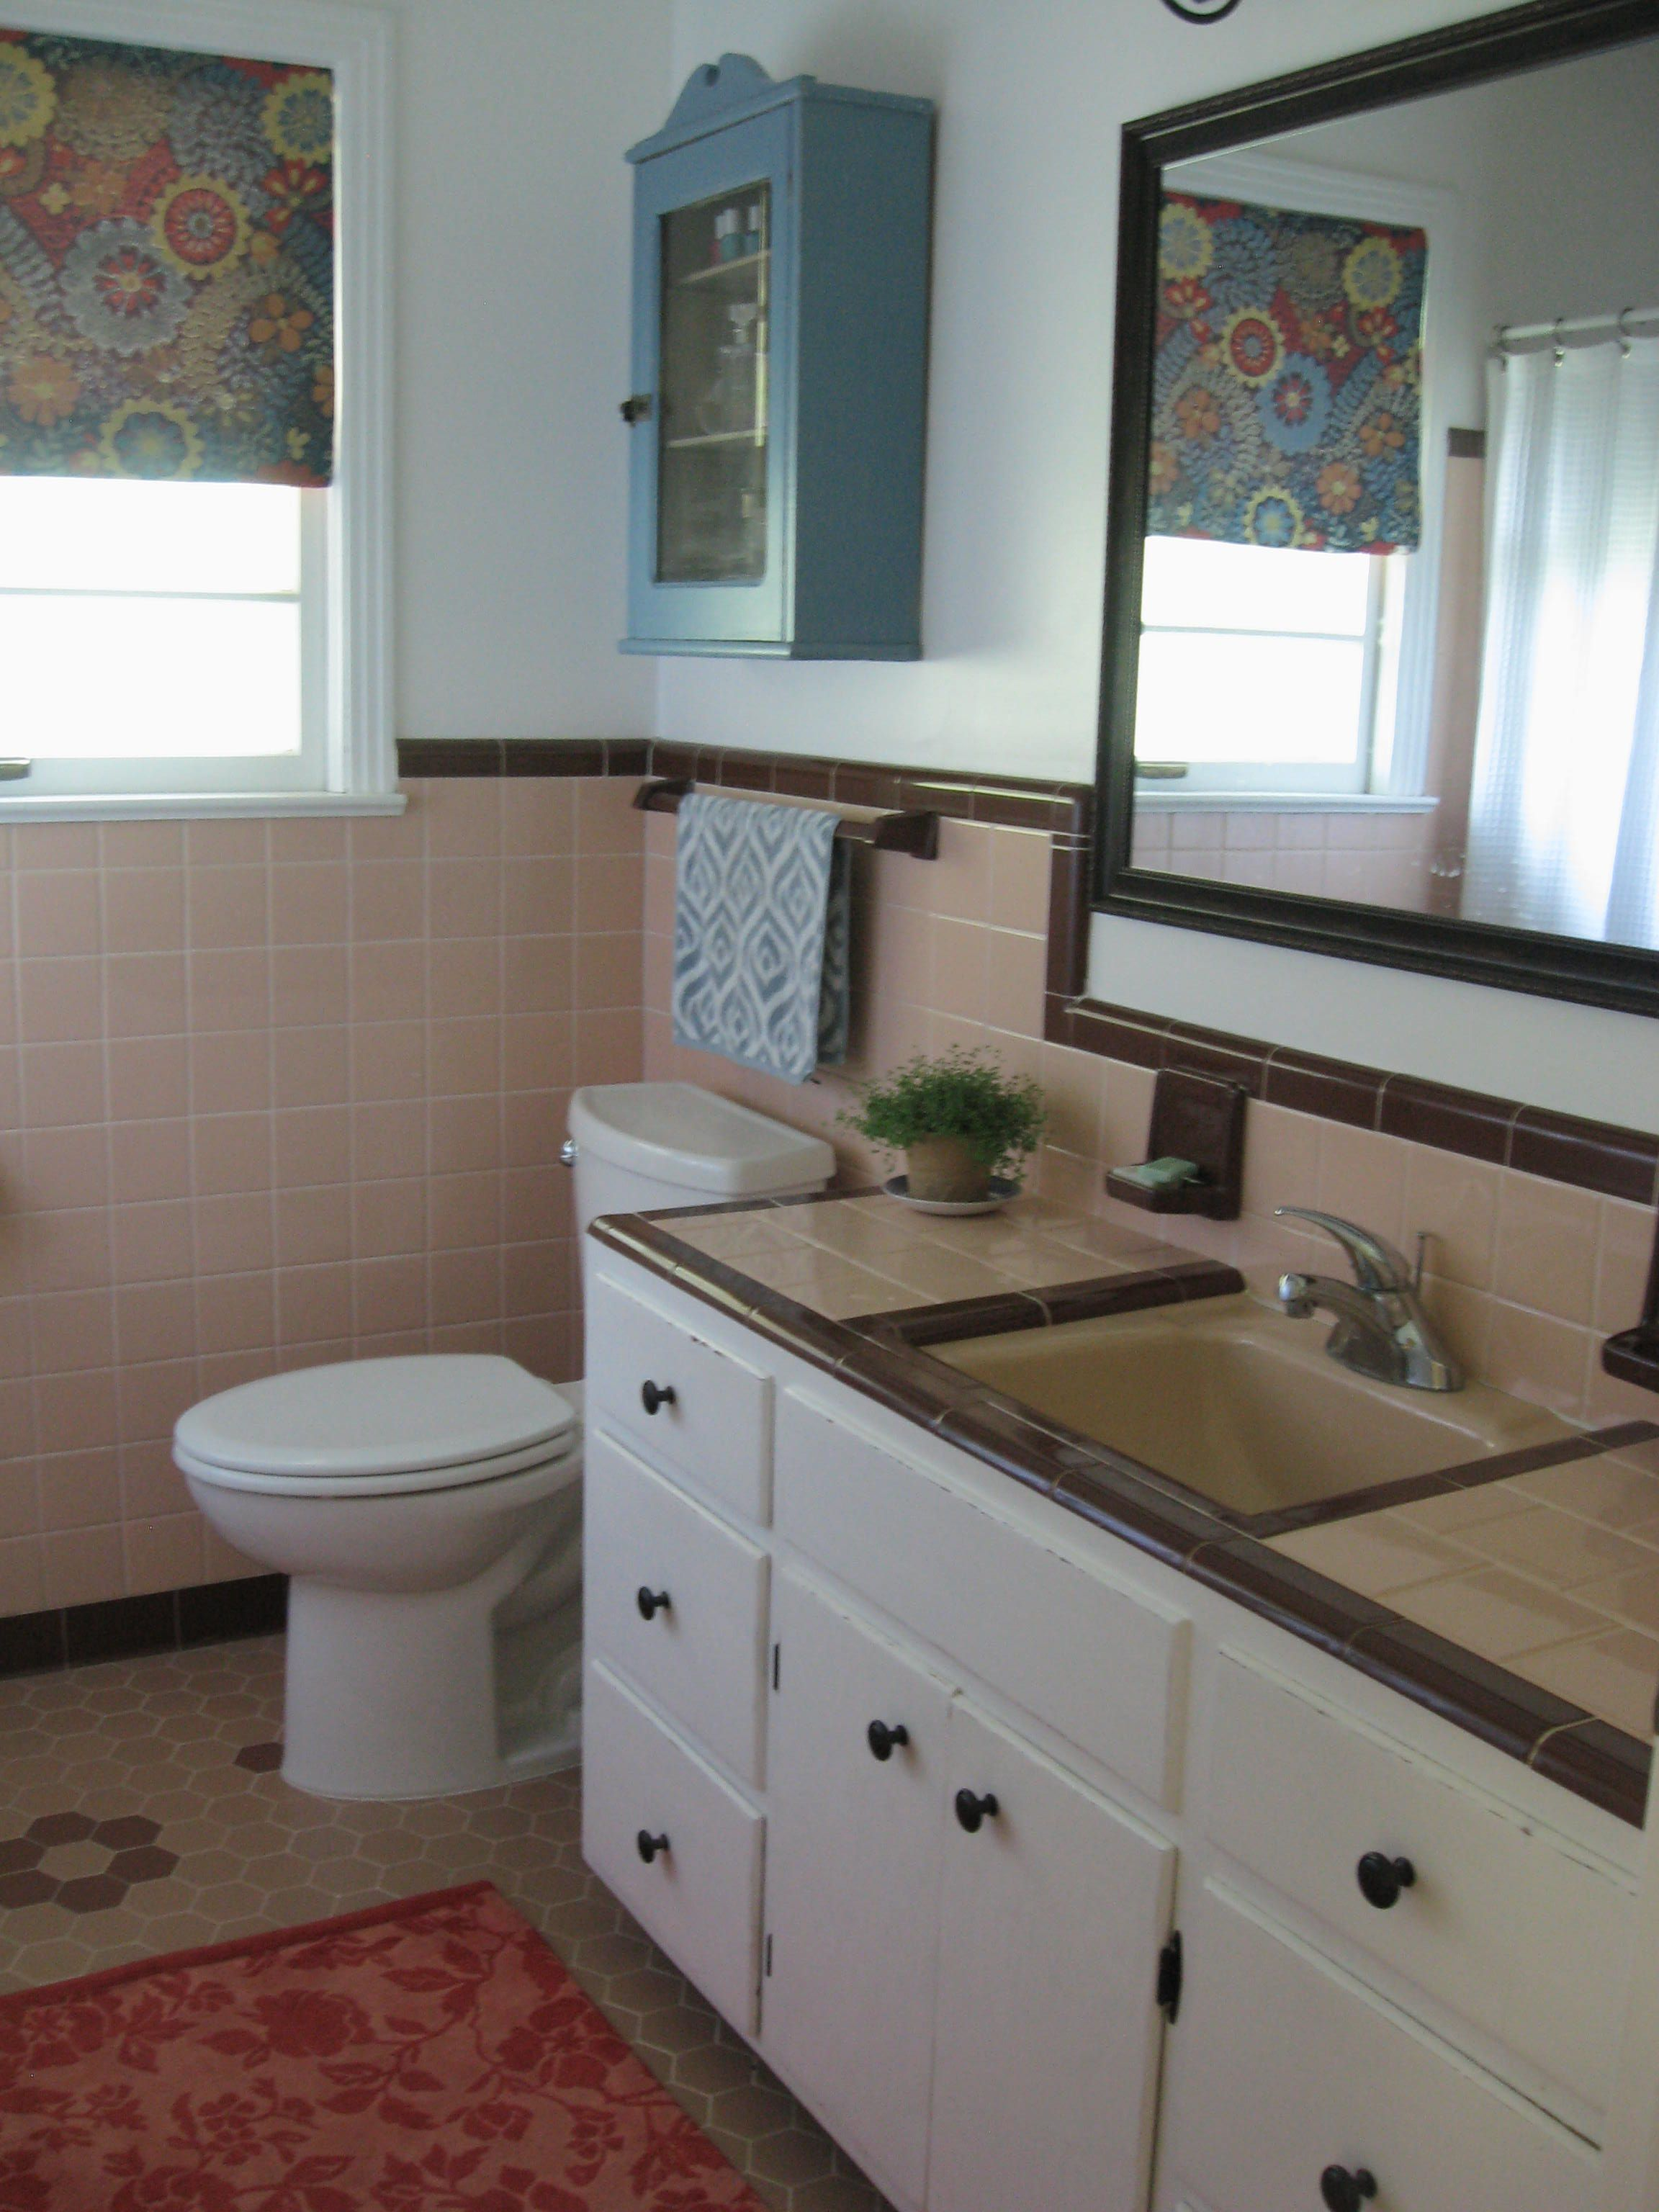 Retro bathroom 50s bathroom peach tile with reddish for Brown tile bathroom ideas